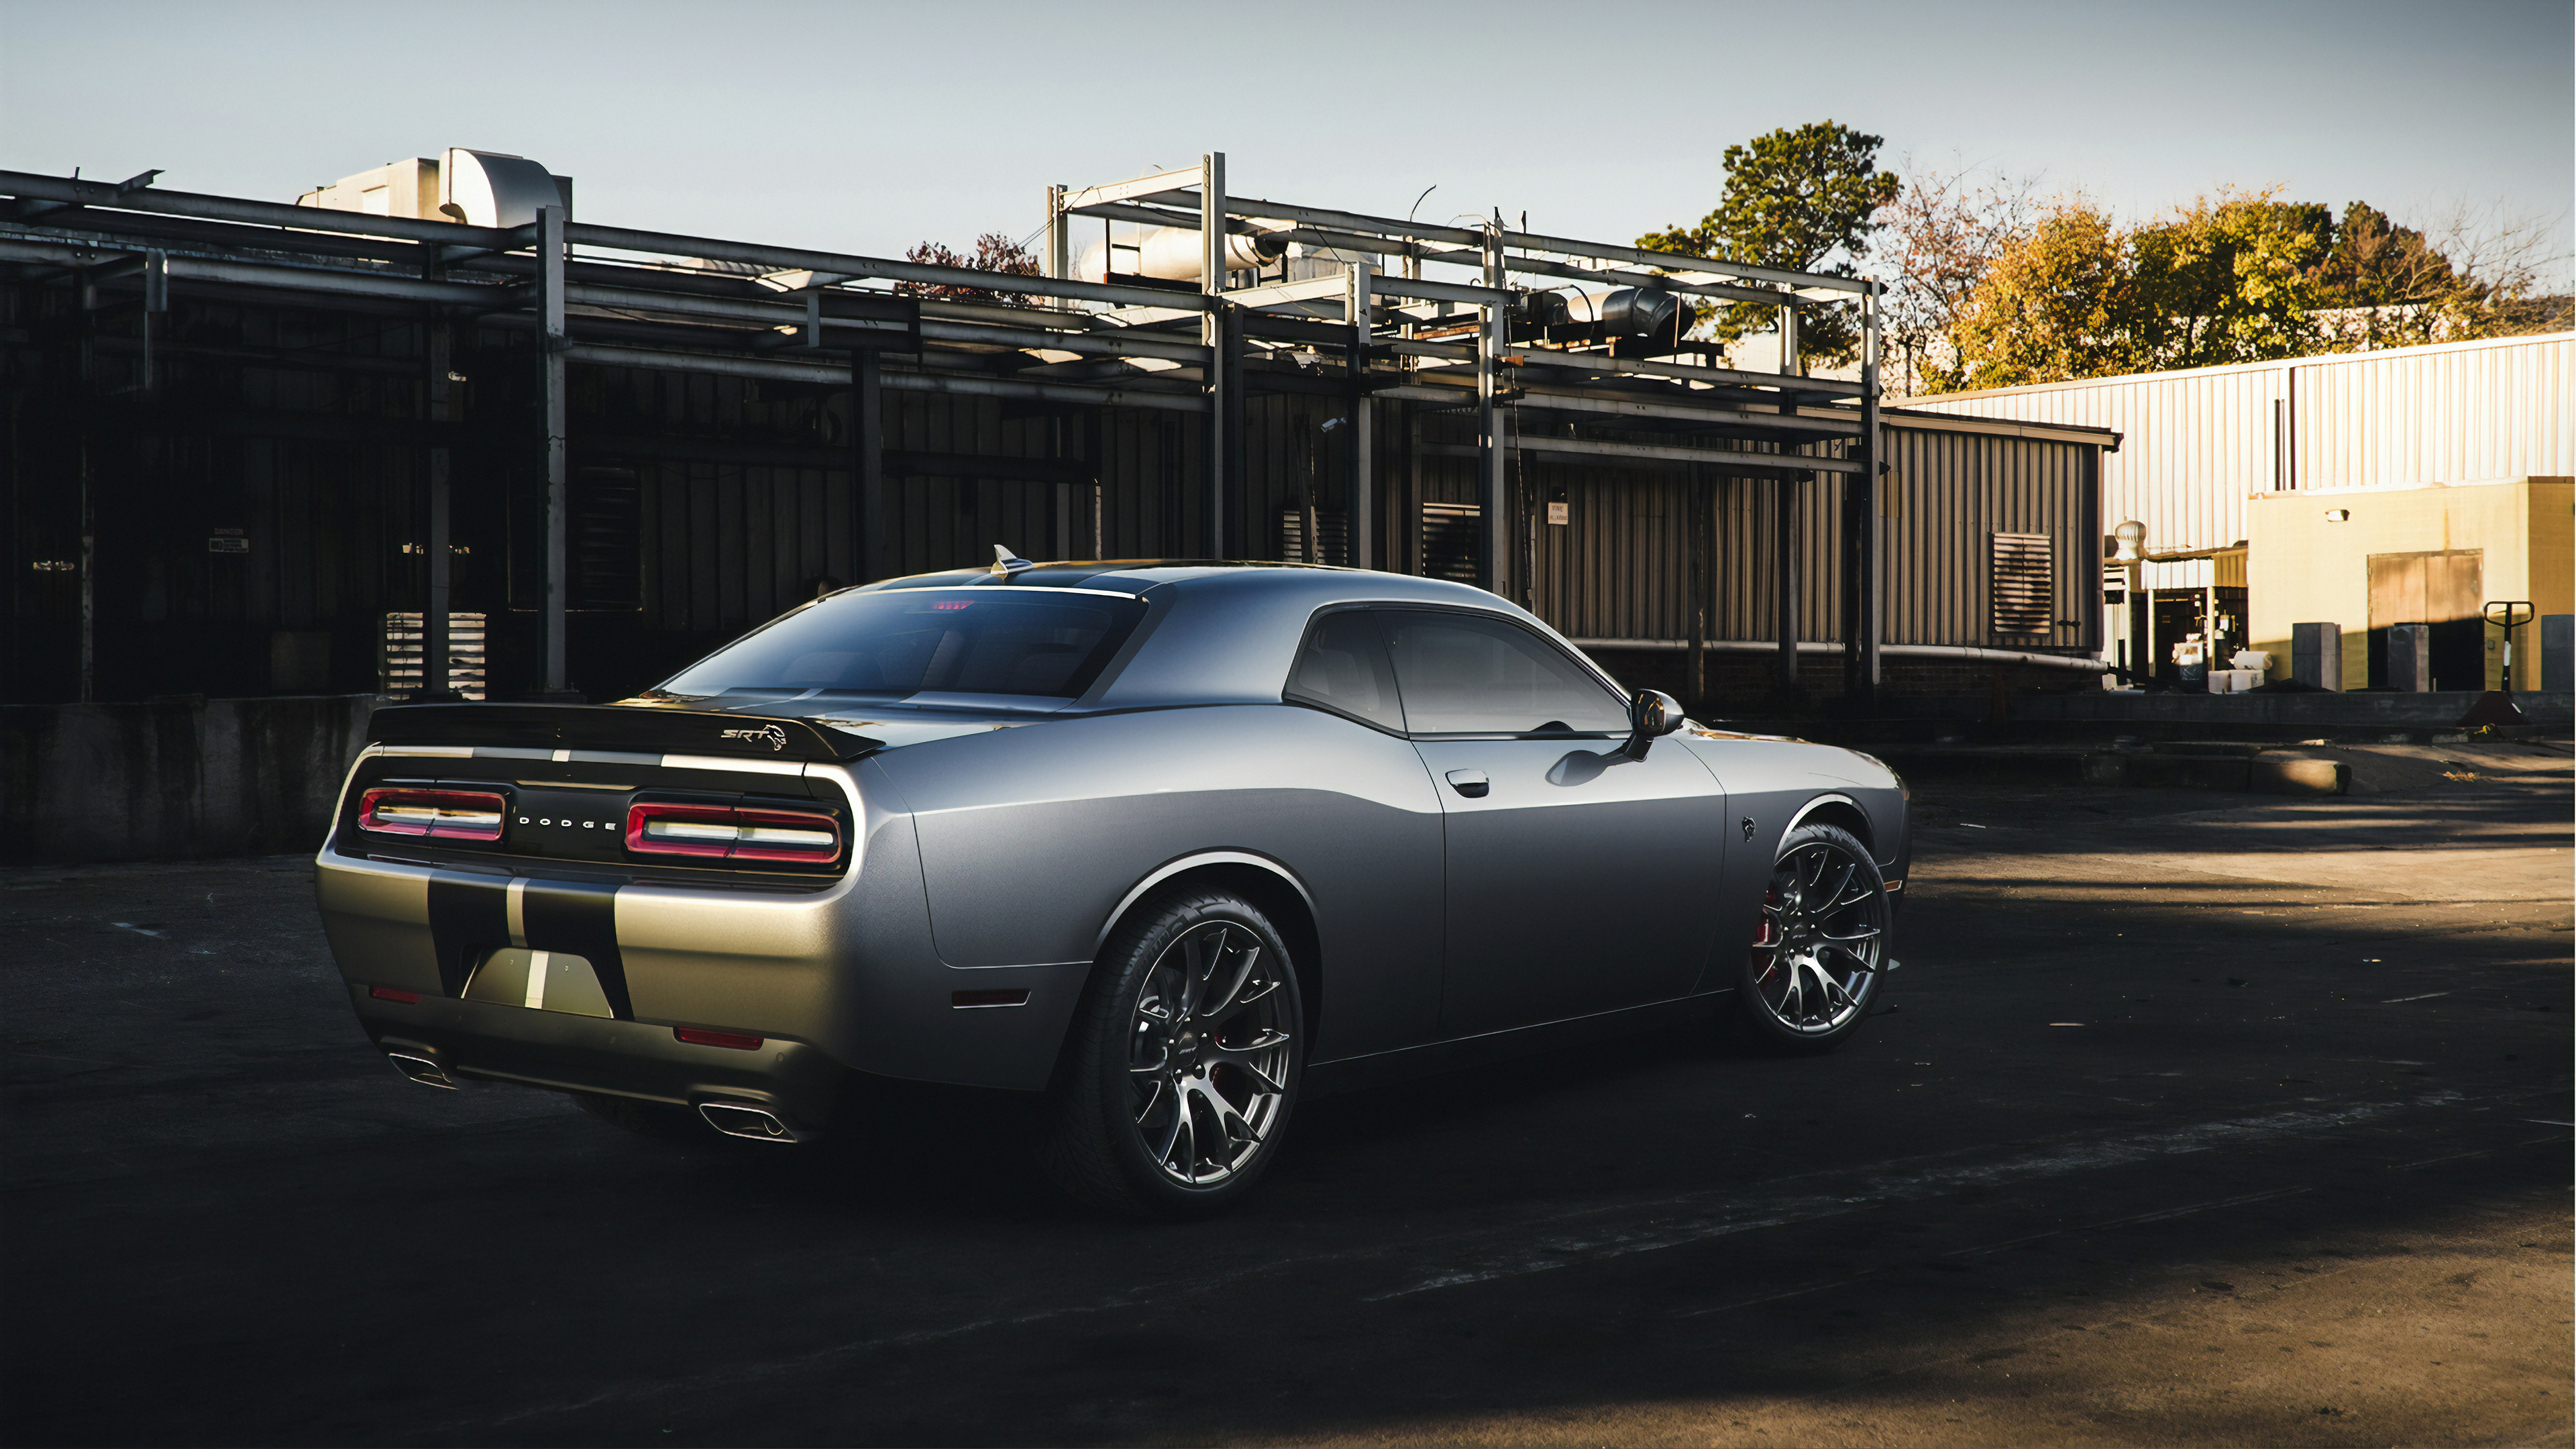 dodge charger srt hellcat 1562108290 - Dodge Charger SRT Hellcat - hd-wallpapers, dodge challenger wallpapers, dodge challenger srt hellcat widebody wallpapers, 4k-wallpapers, 2019 cars wallpapers